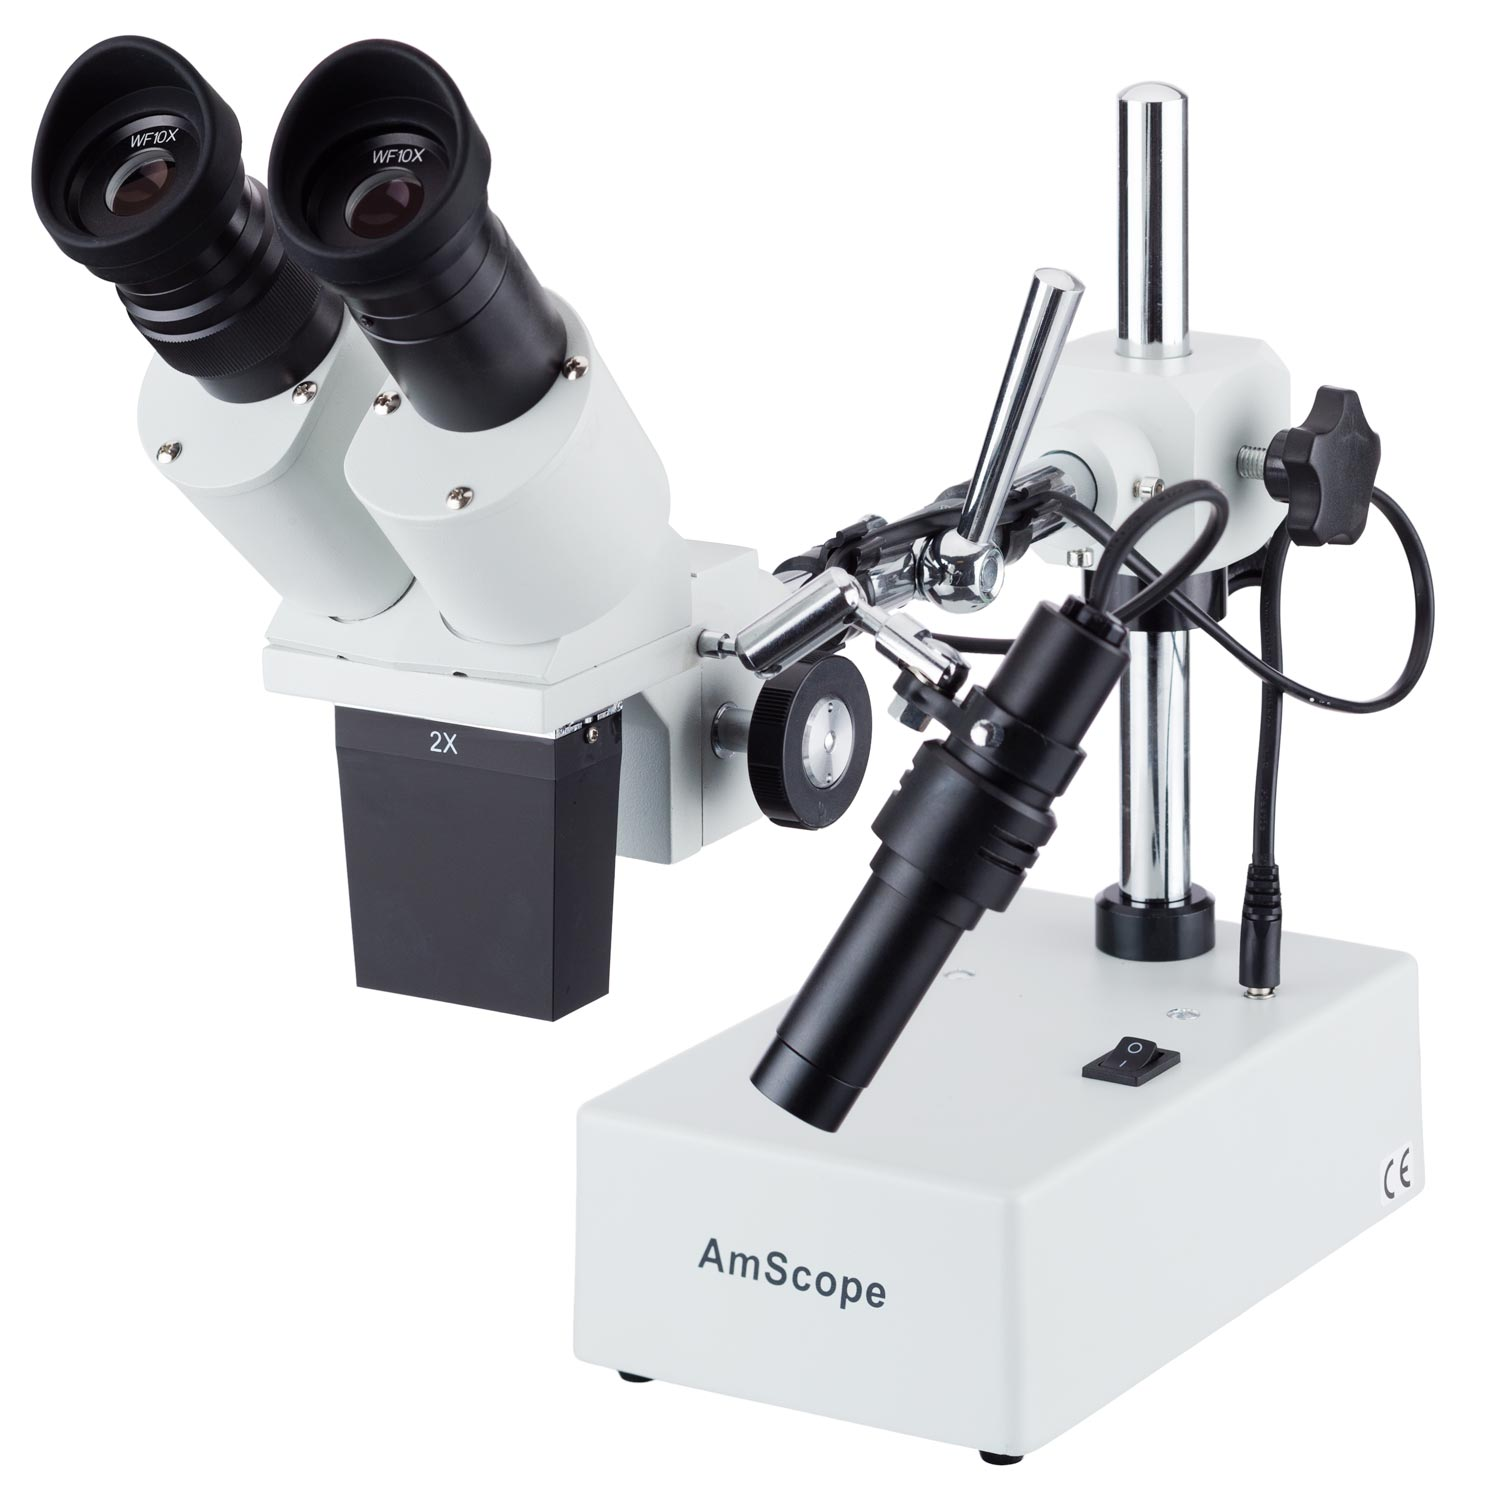 AmScope 10X & 20X Widefield Stereo Microscope with Boom Arm Stand and Incident Light by United Scope